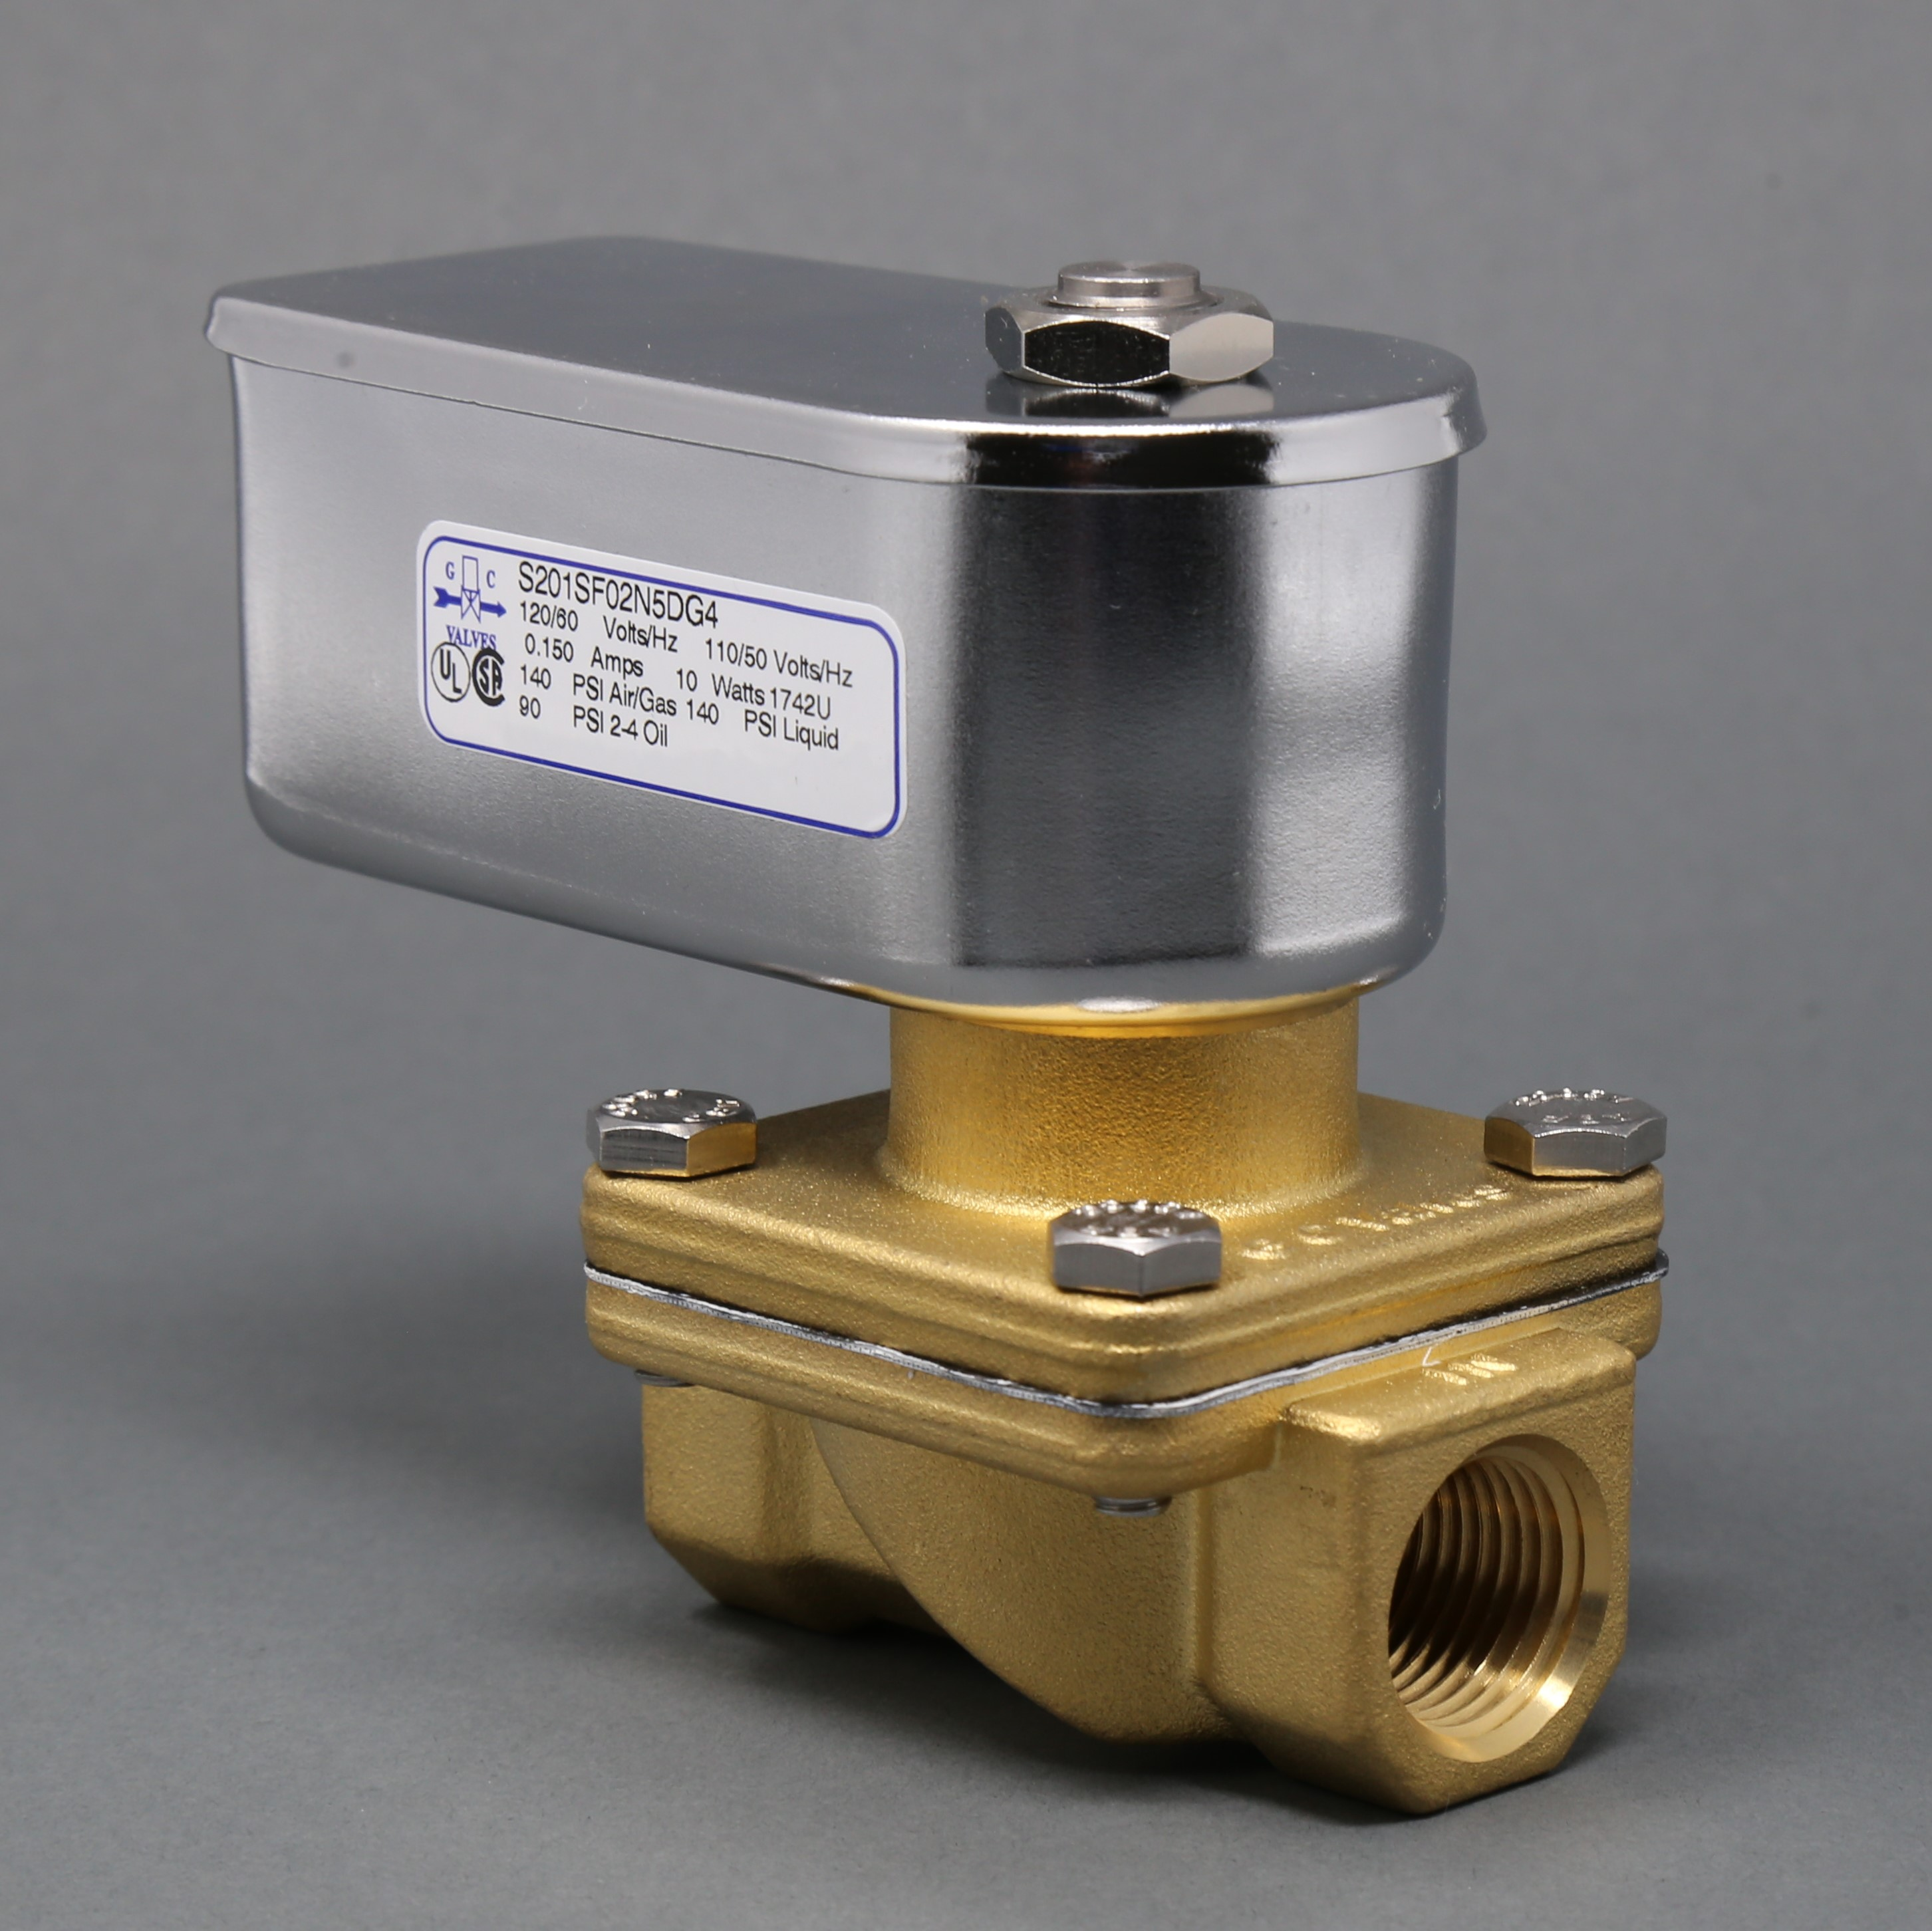 GC Valves S201 Series Normally Closed Solenoid Valve